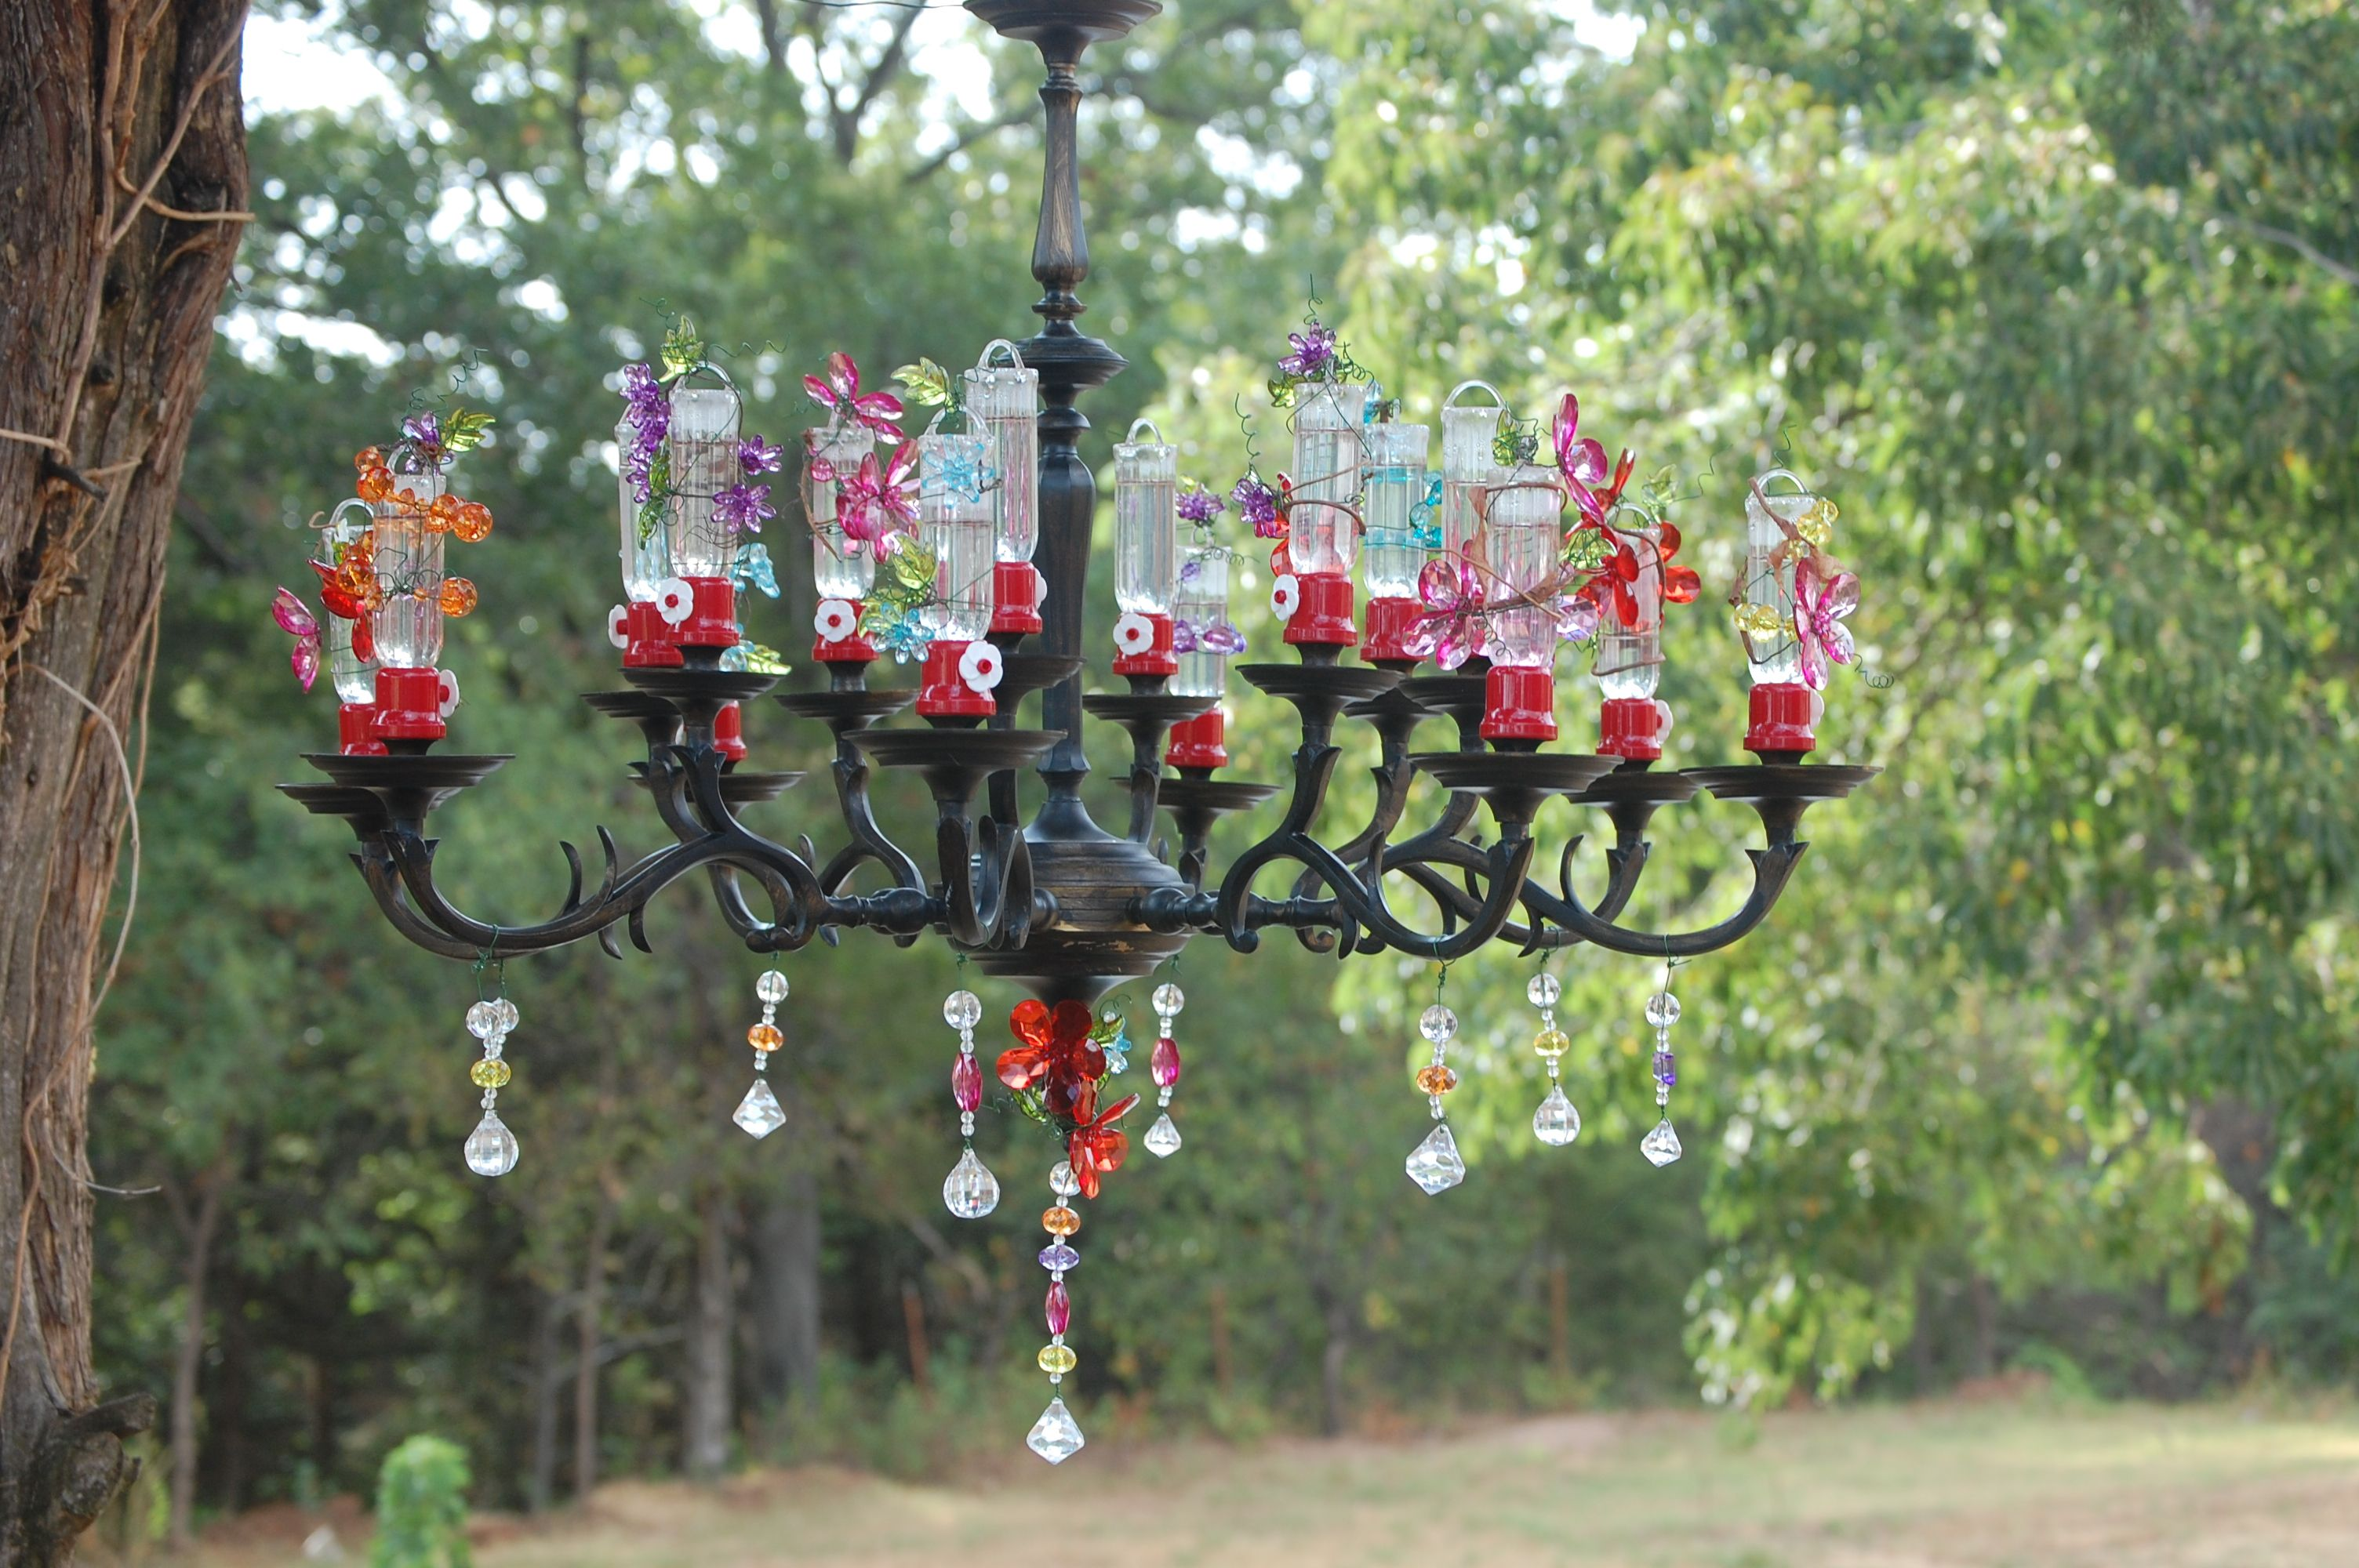 xxx feeder hummingbird and feeders glass art hanging christmas product tree decorative flowers do